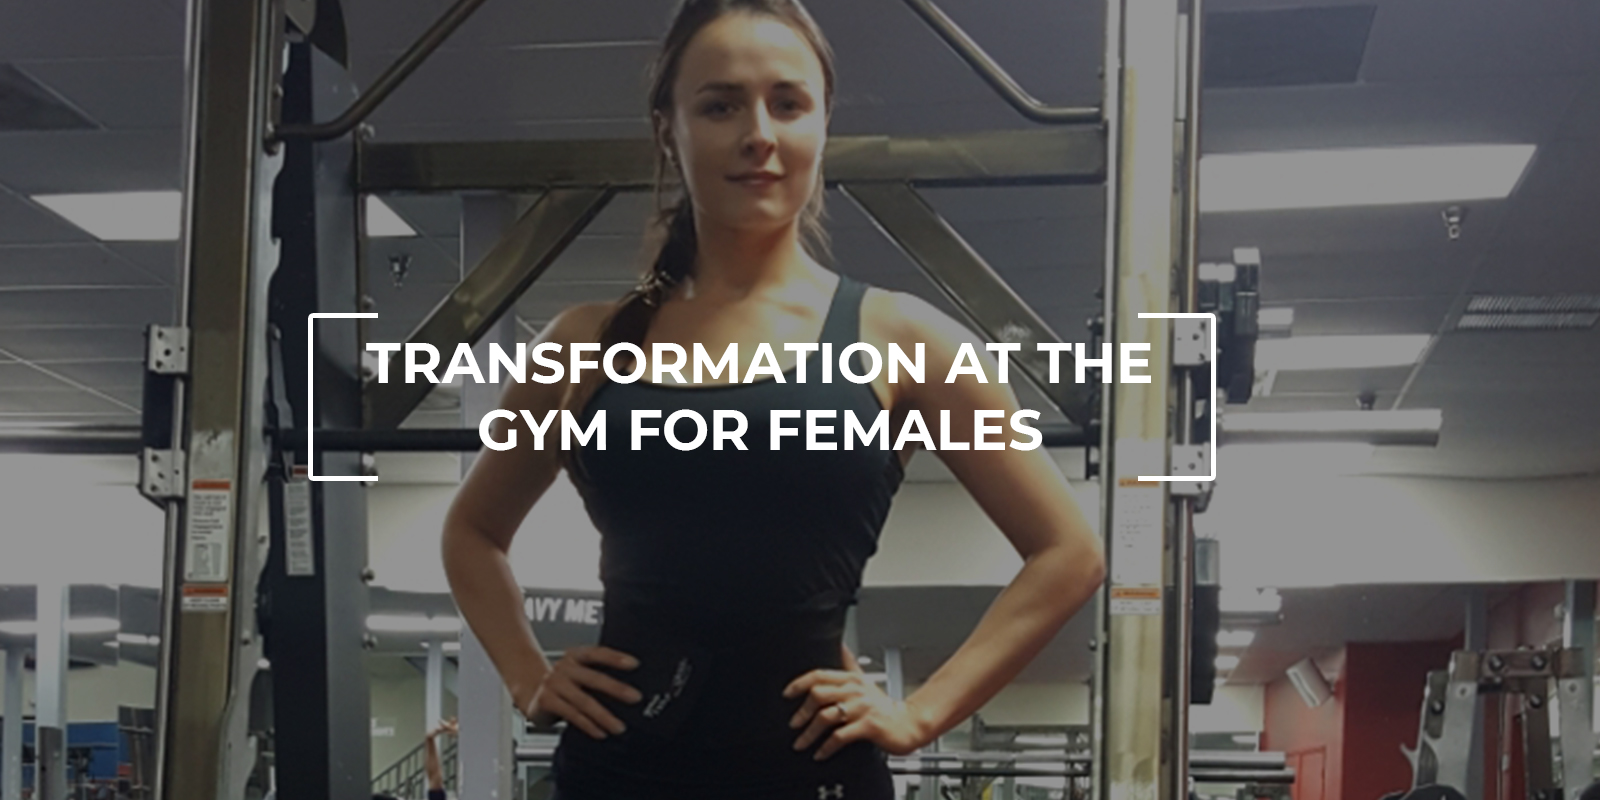 Transformation at gym for females